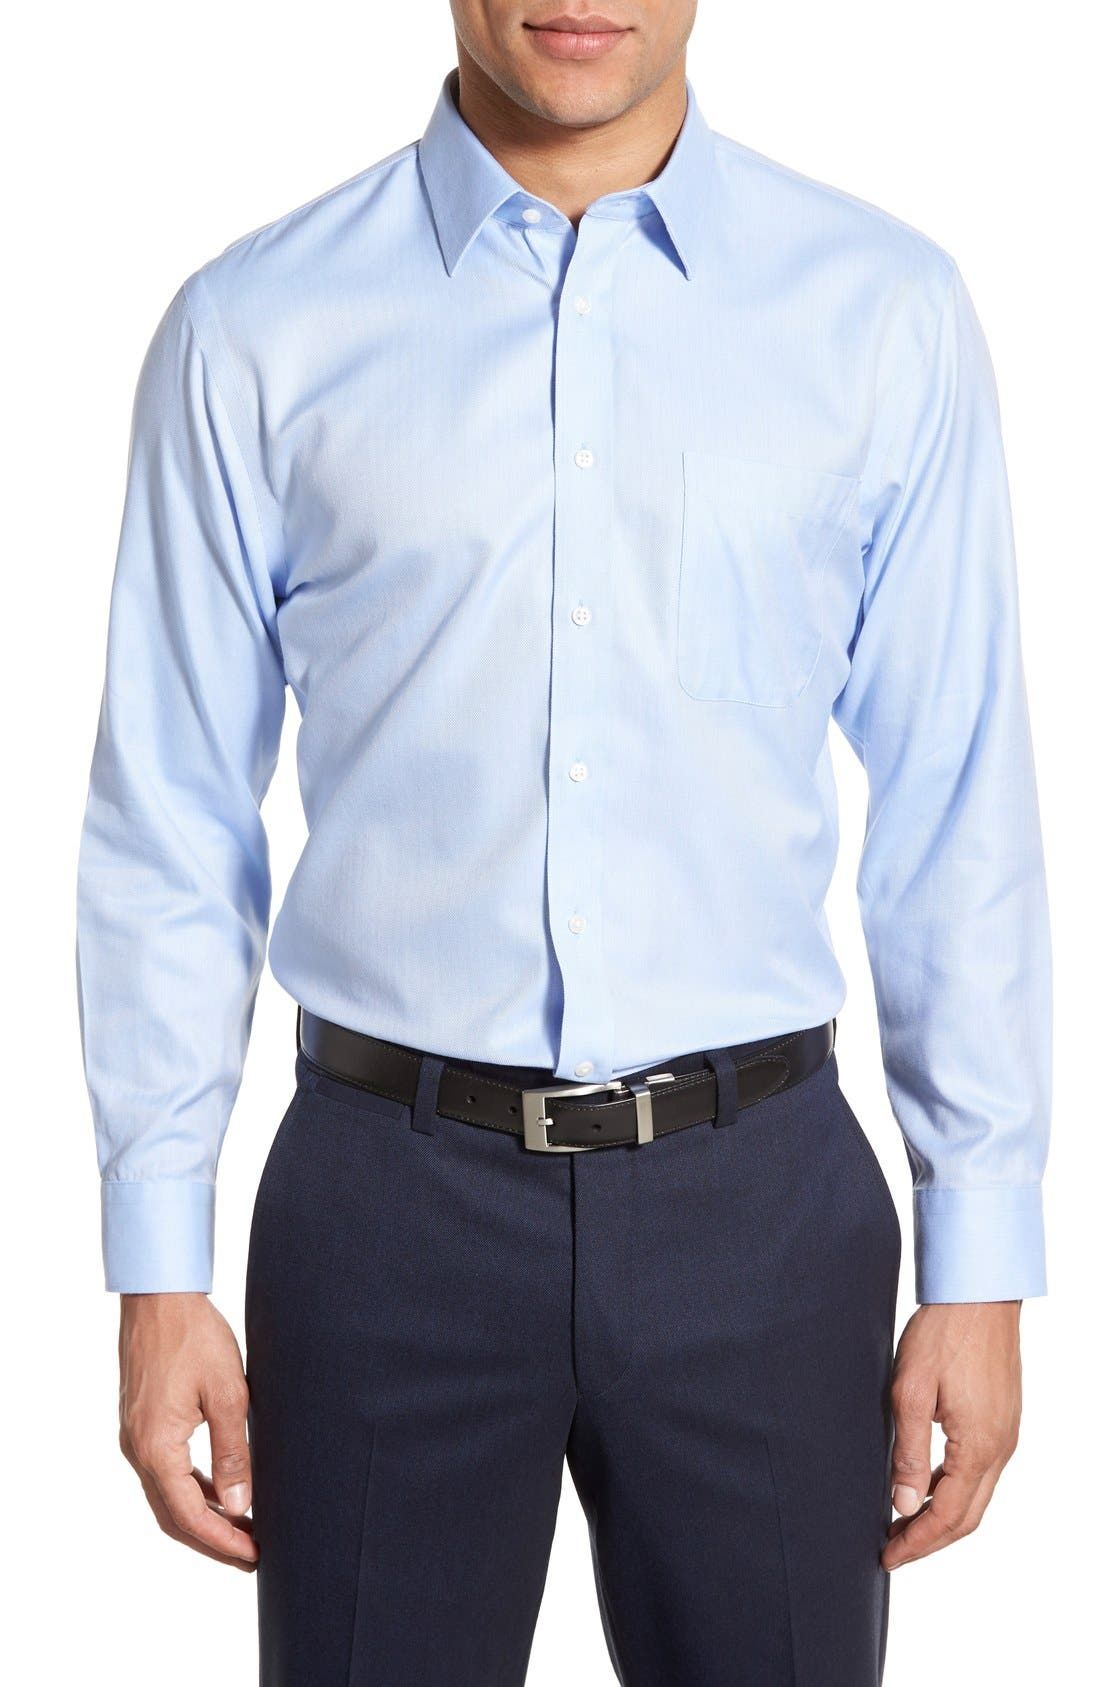 Smartcare<sup>™</sup> Trim Fit Herringbone Dress Shirt,                         Main,                         color, Blue